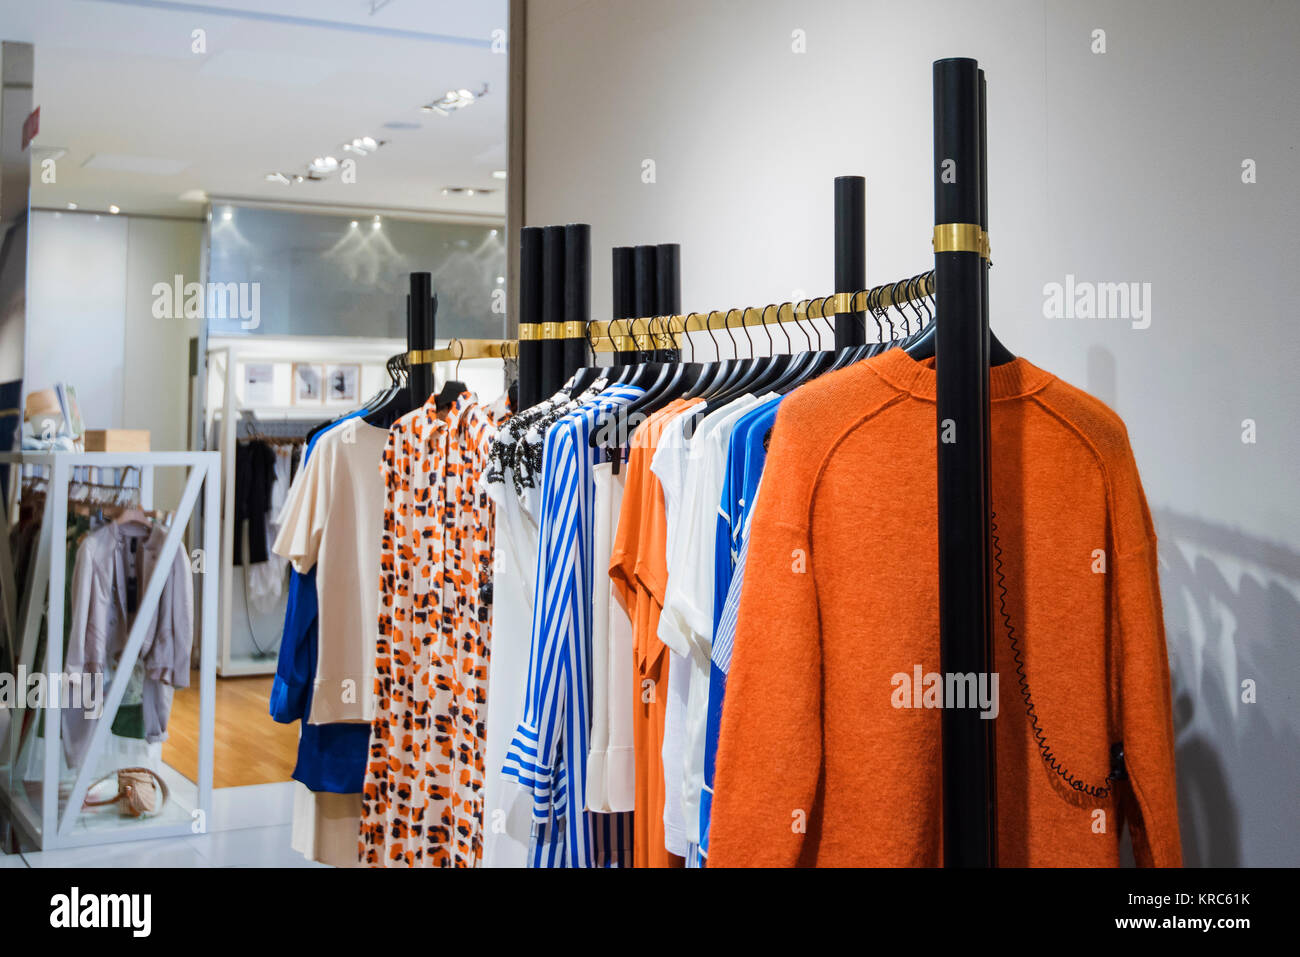 Elegance clothing store